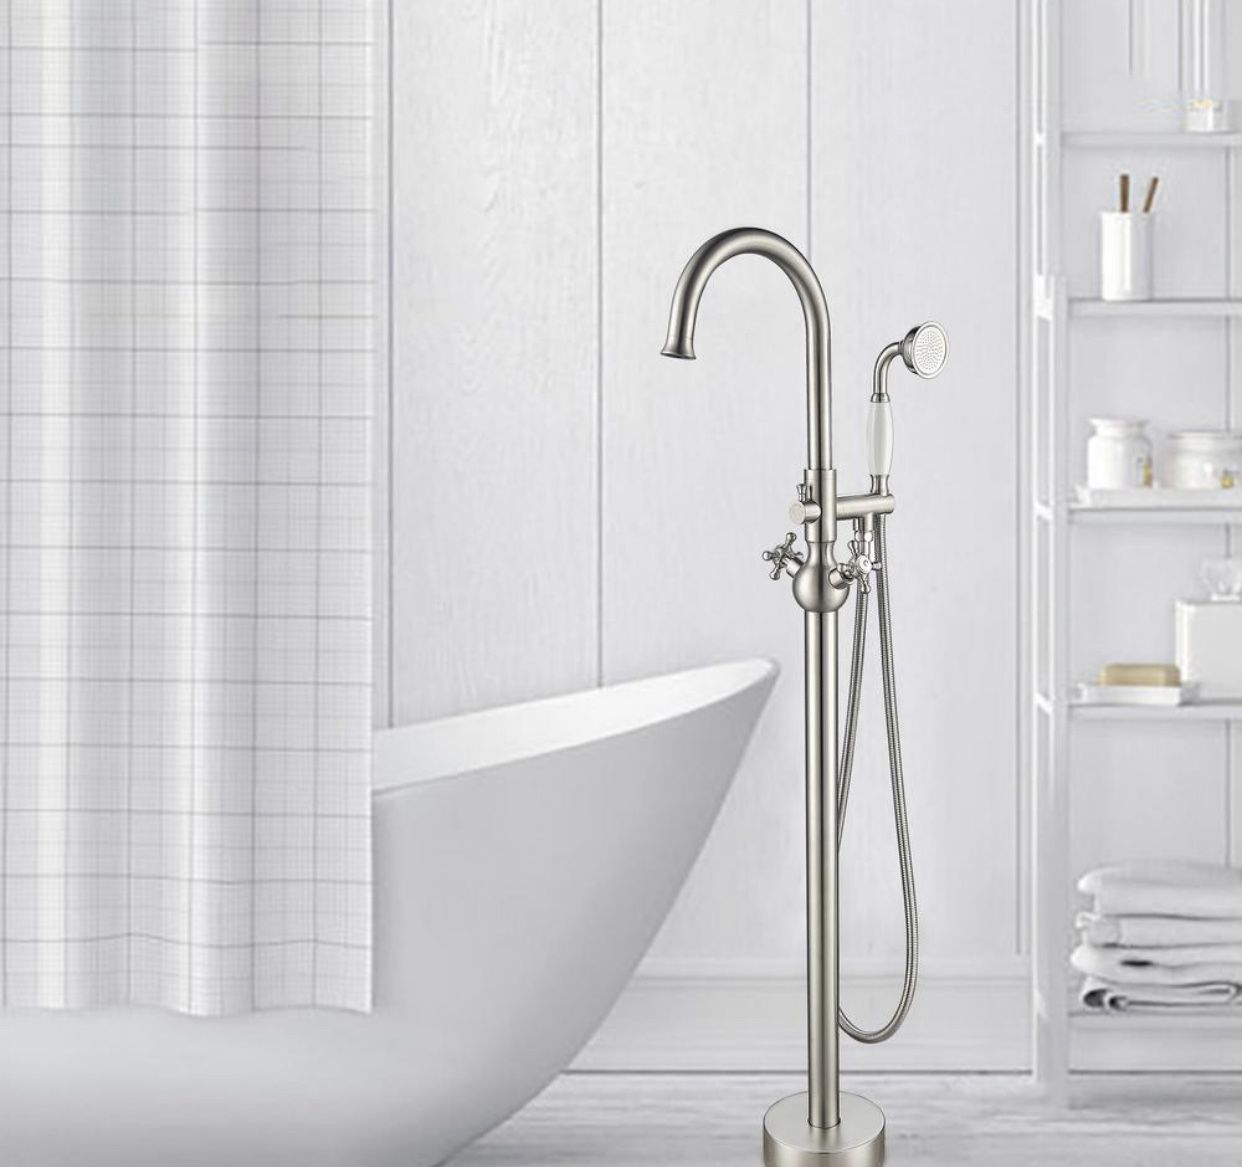 Vanity Art 48 in. H x 12 in. W Single Handle Claw Foot Tub Faucet with Hand Shower in Brushed Nickel